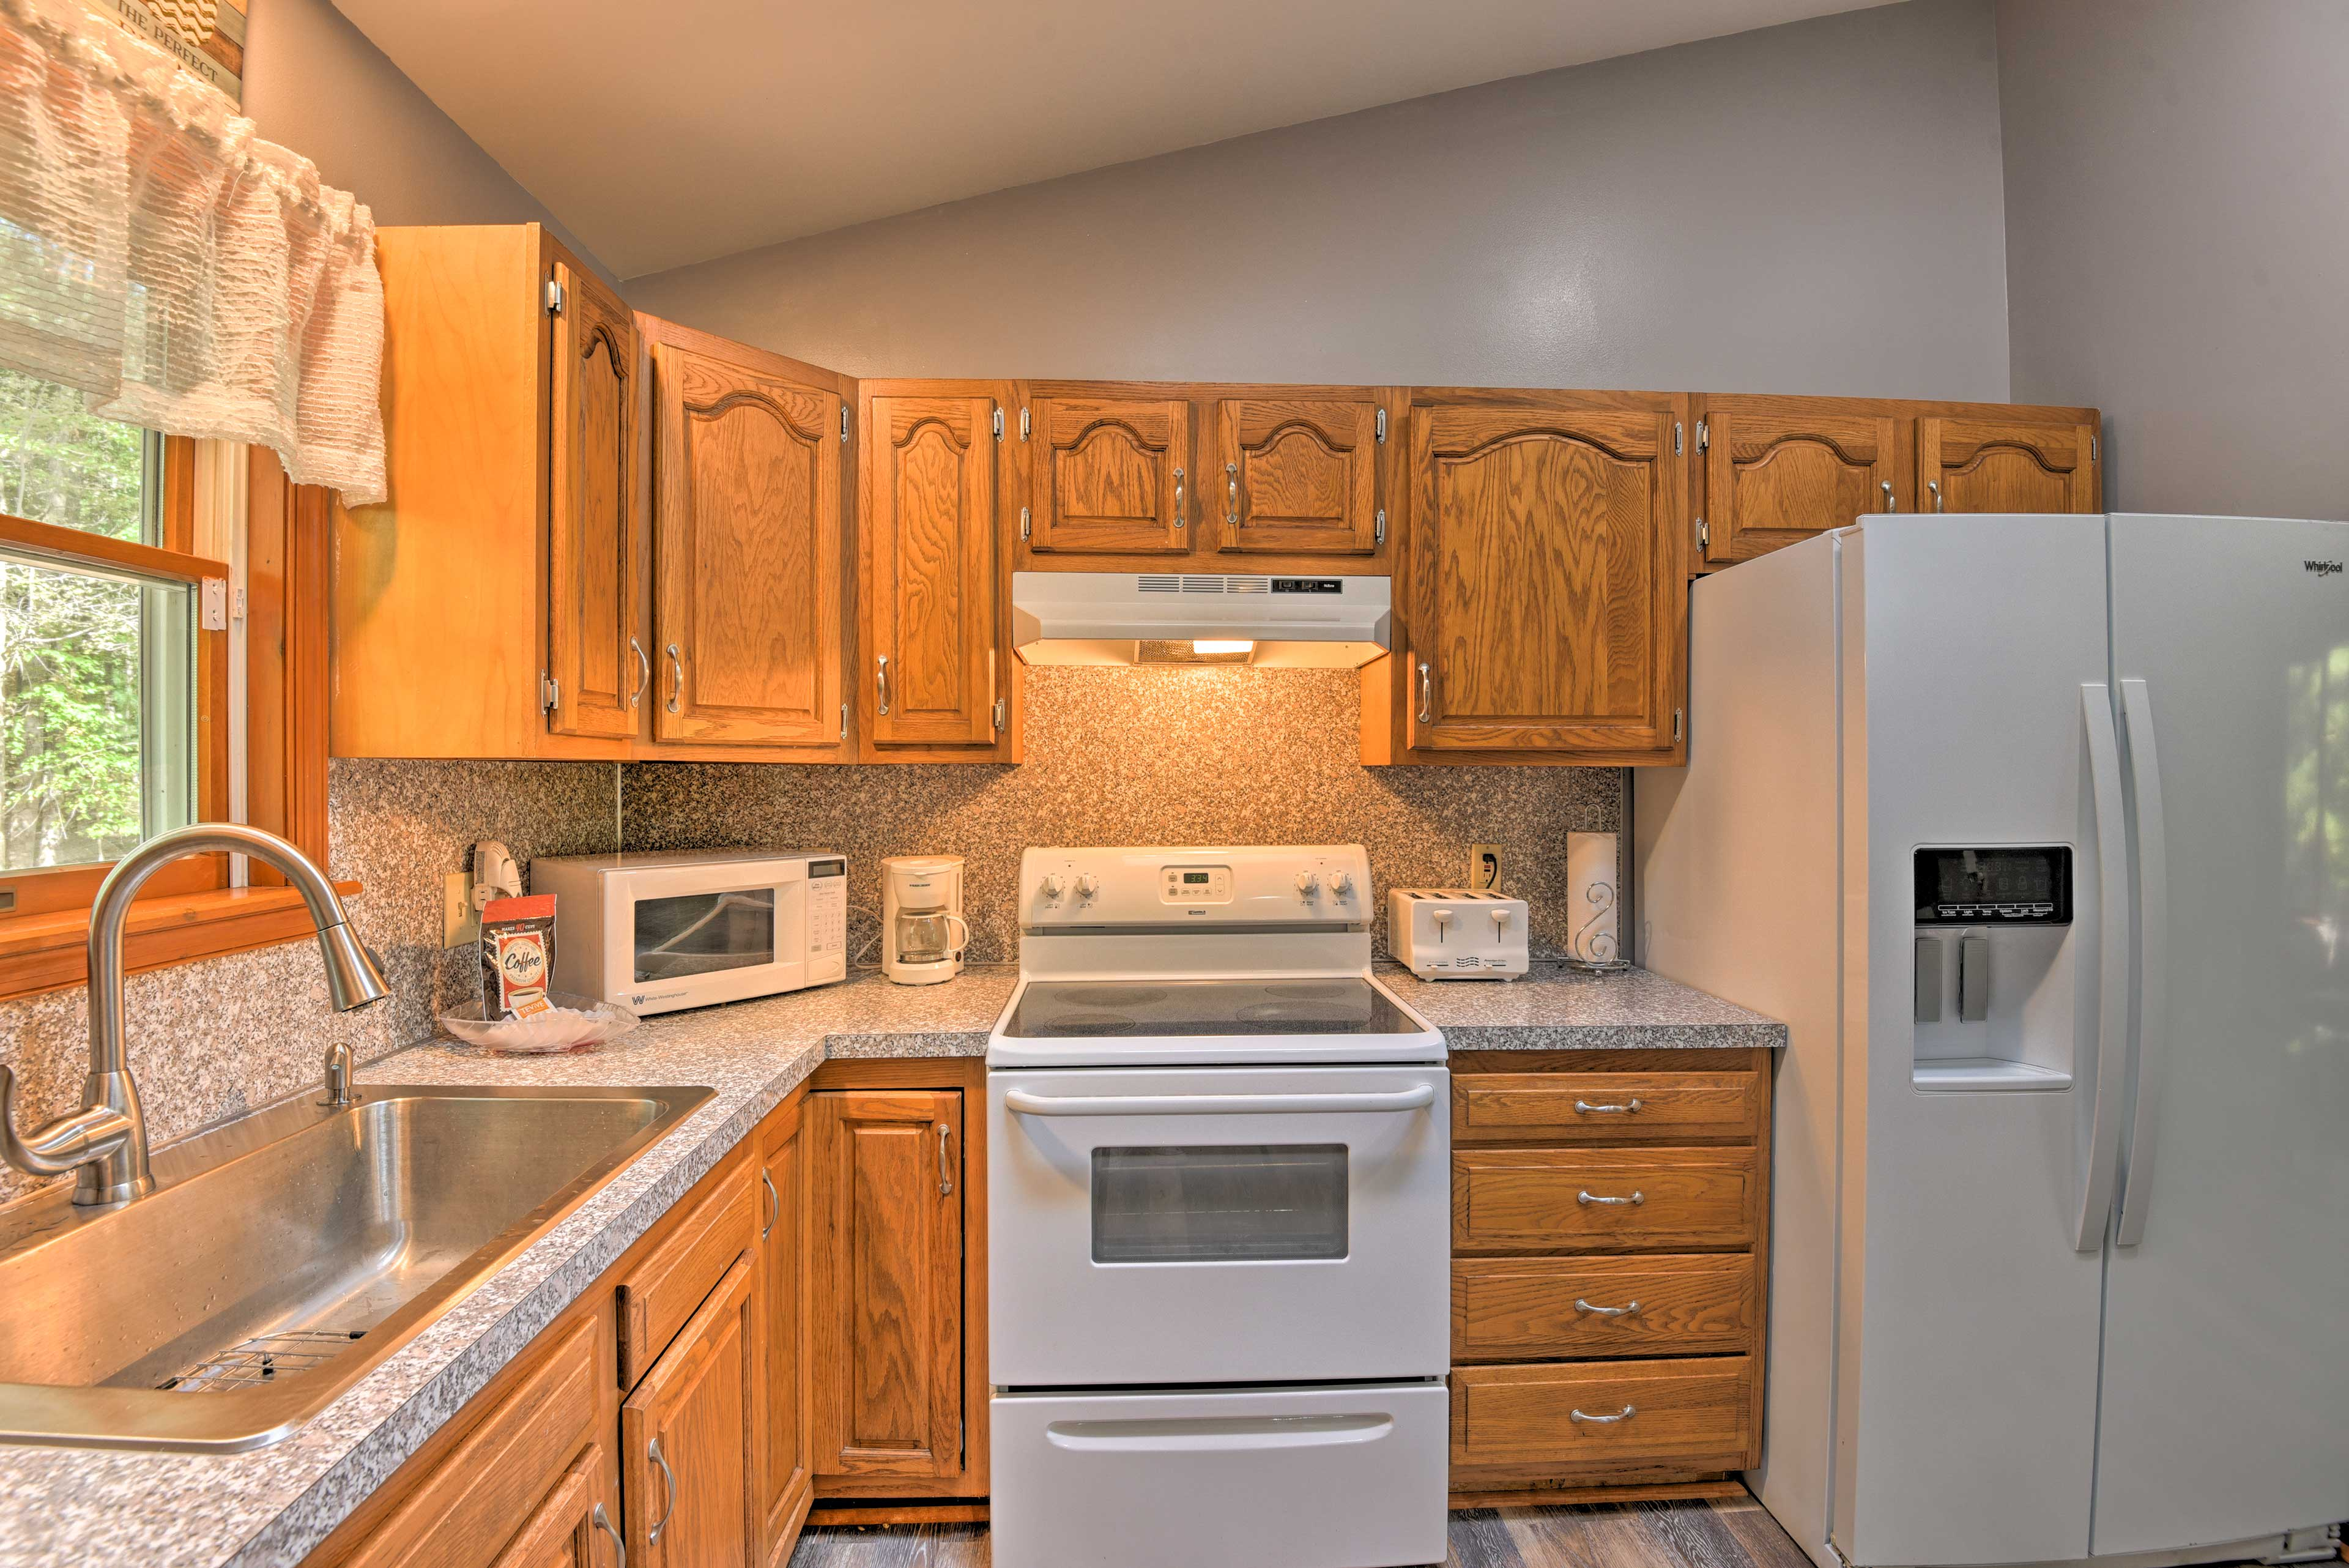 Make your meals in the fully equipped kitchen.